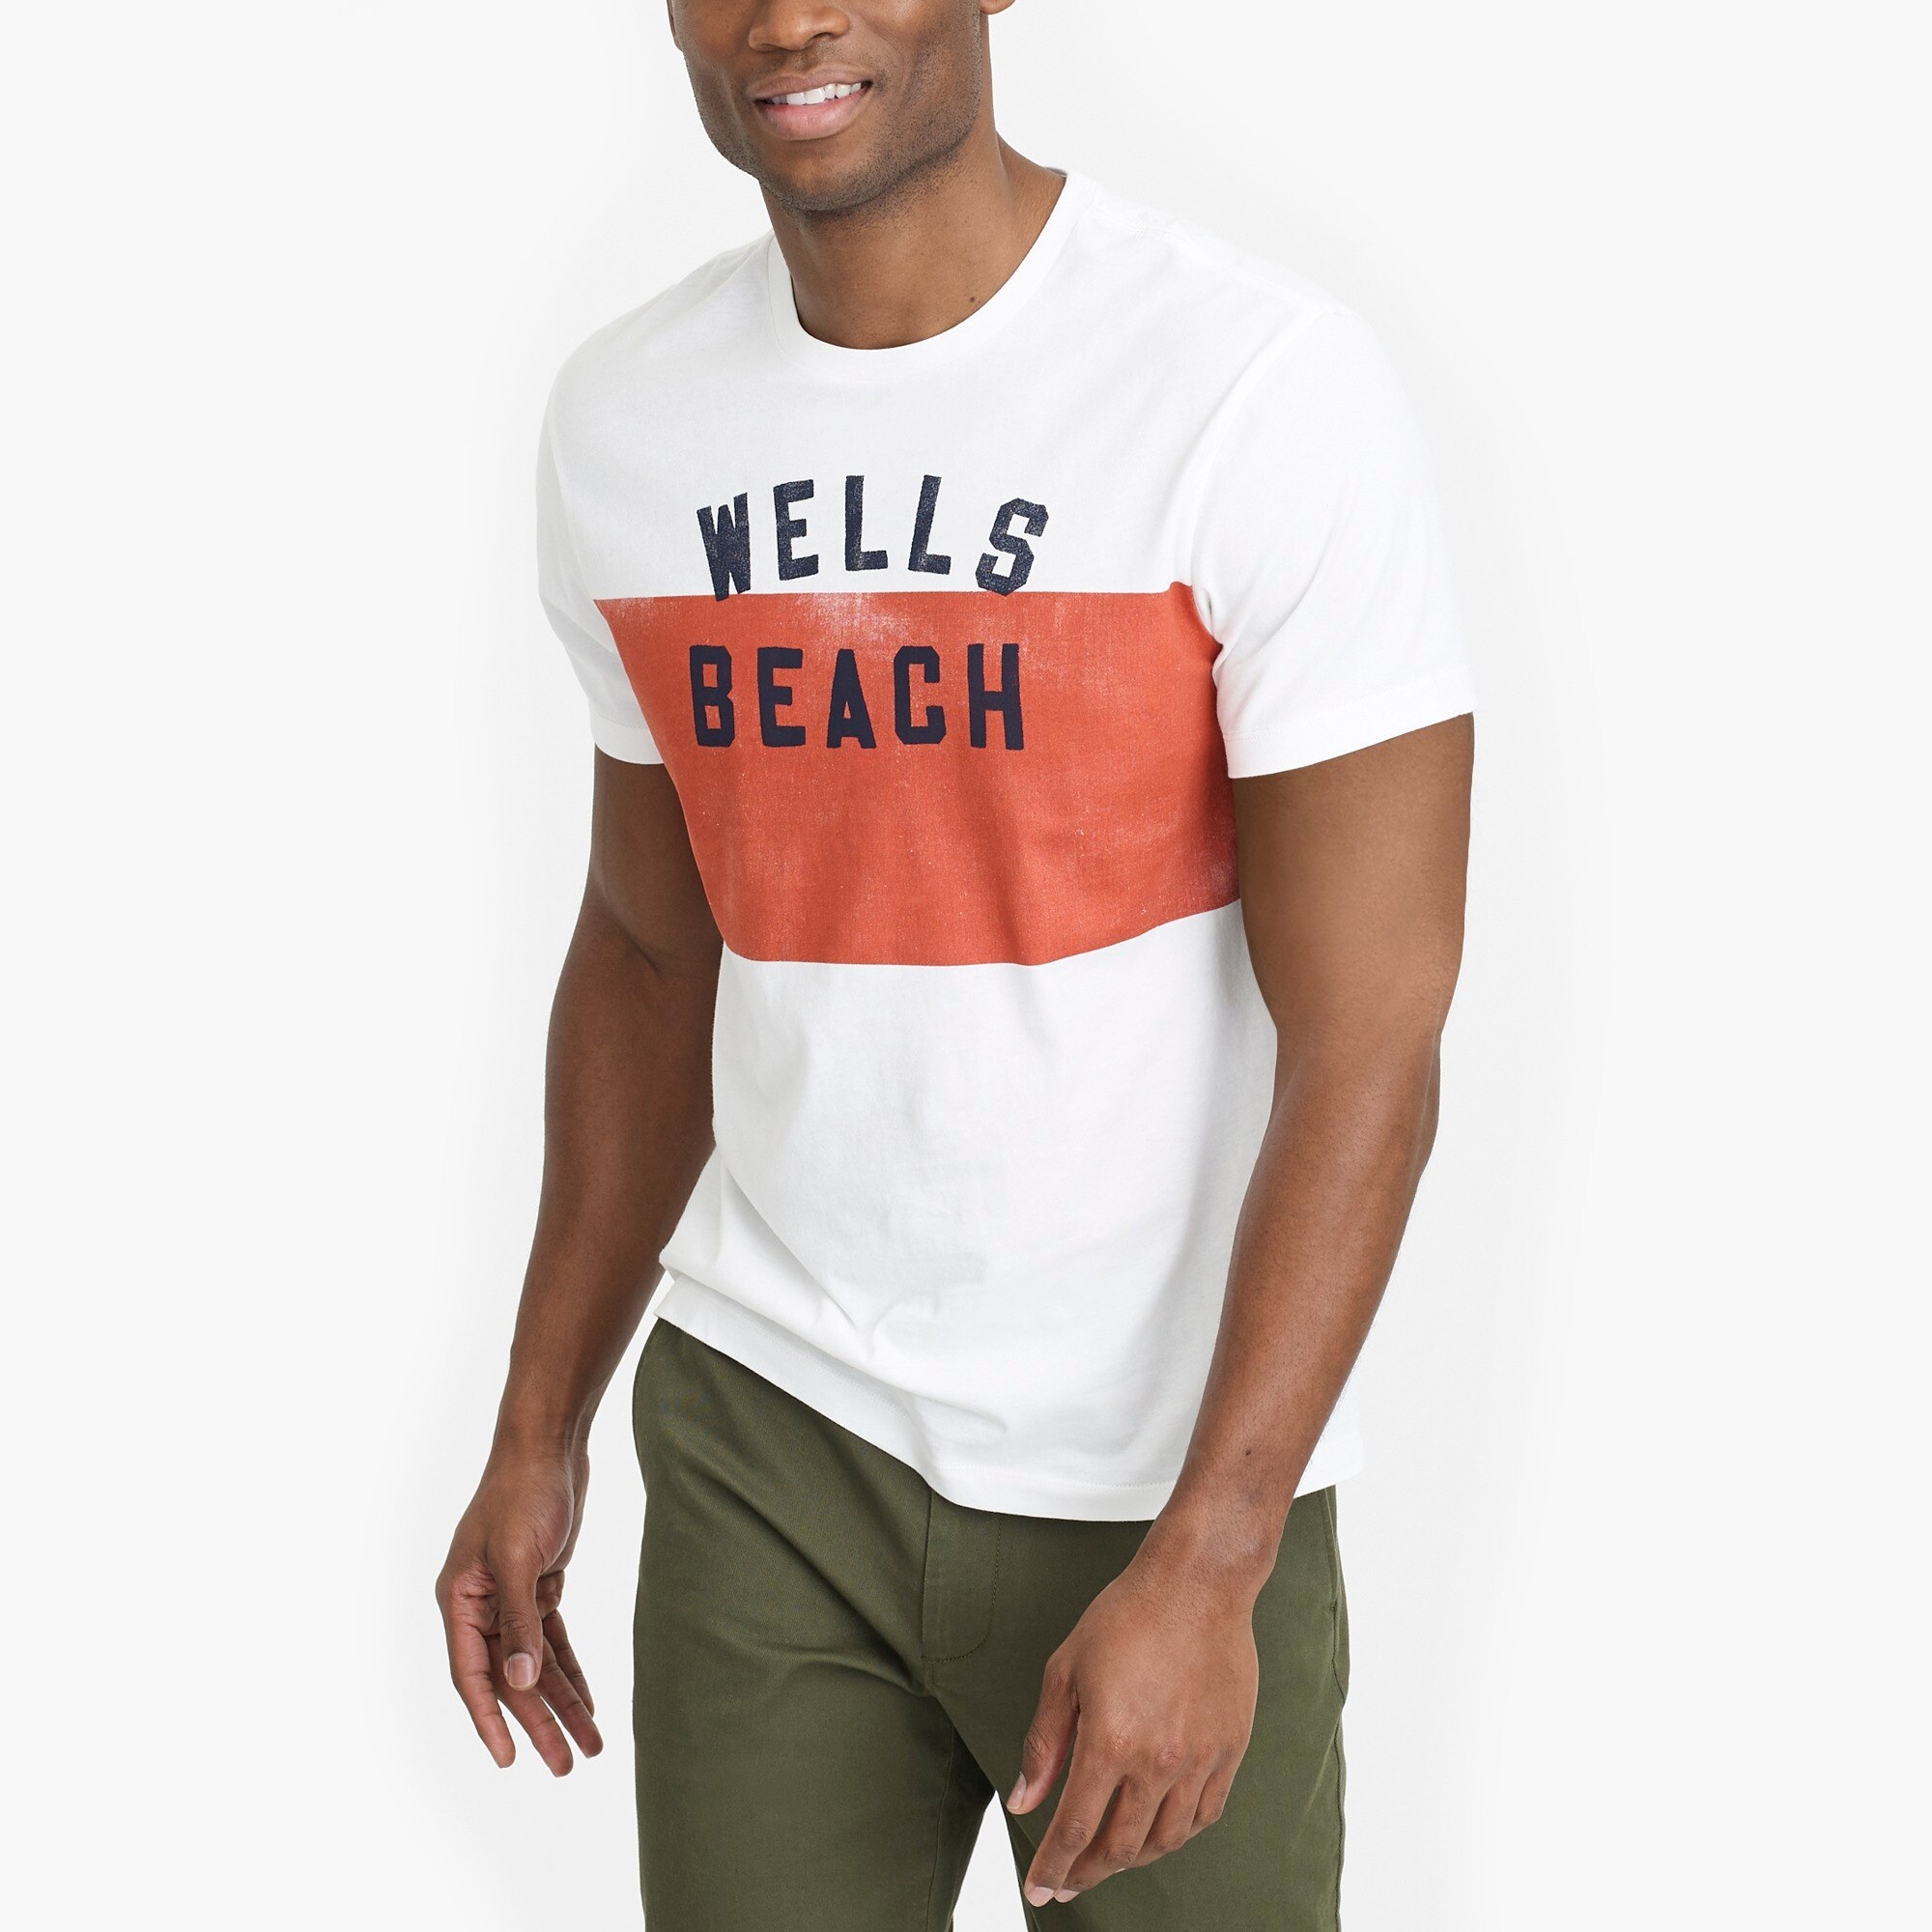 J.Crew Mercantile Broken-in Wells Beach T-shirt factorymen t-shirts & henleys c